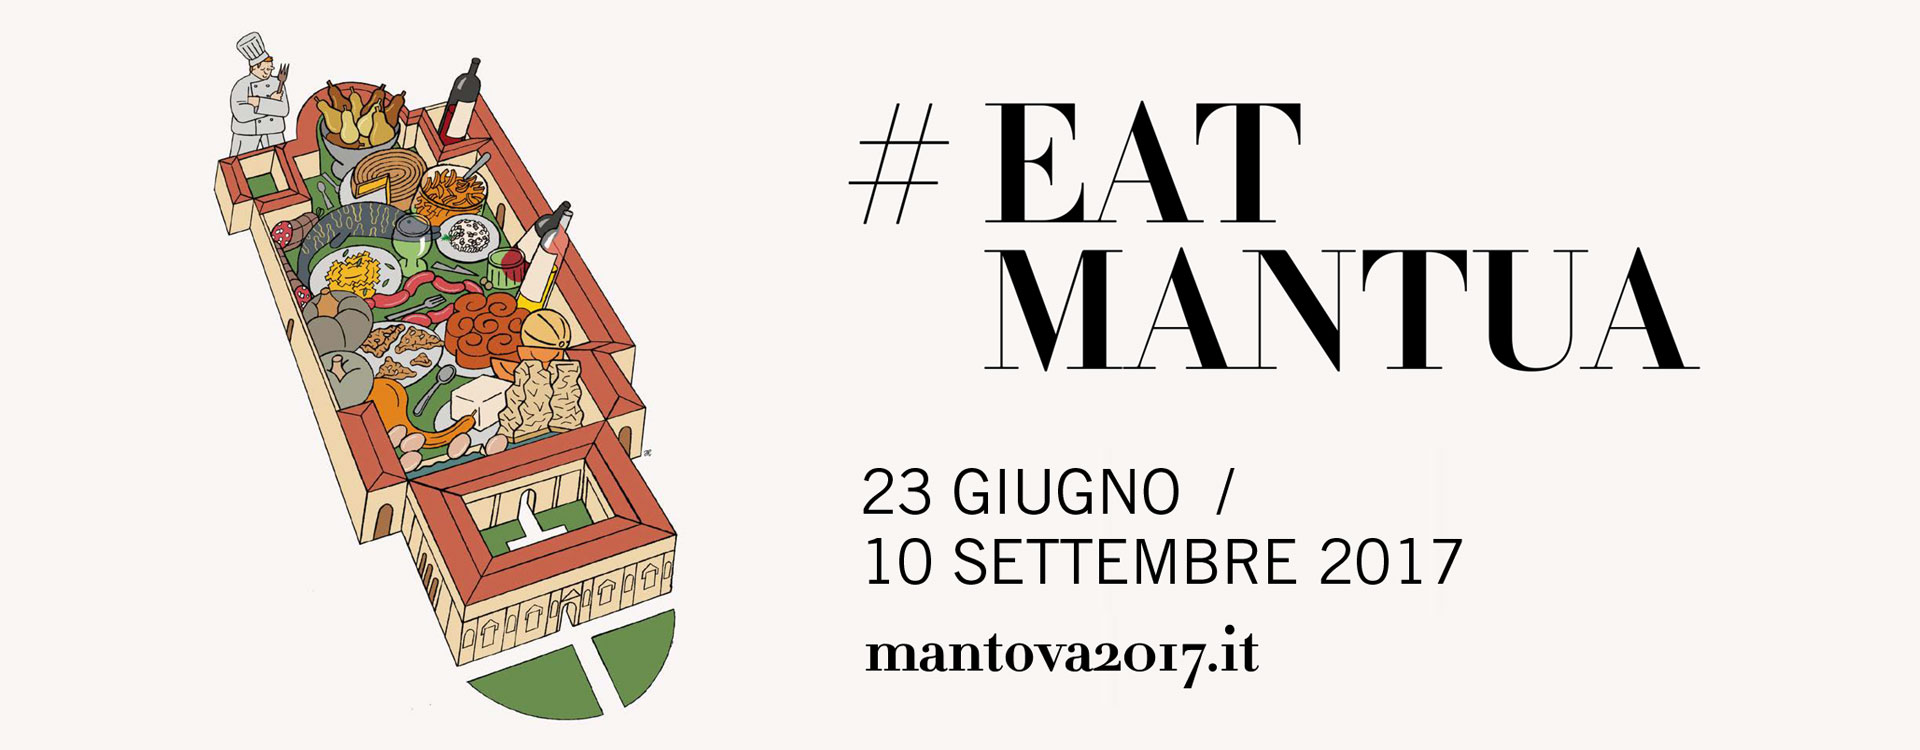 Mantova2016.it